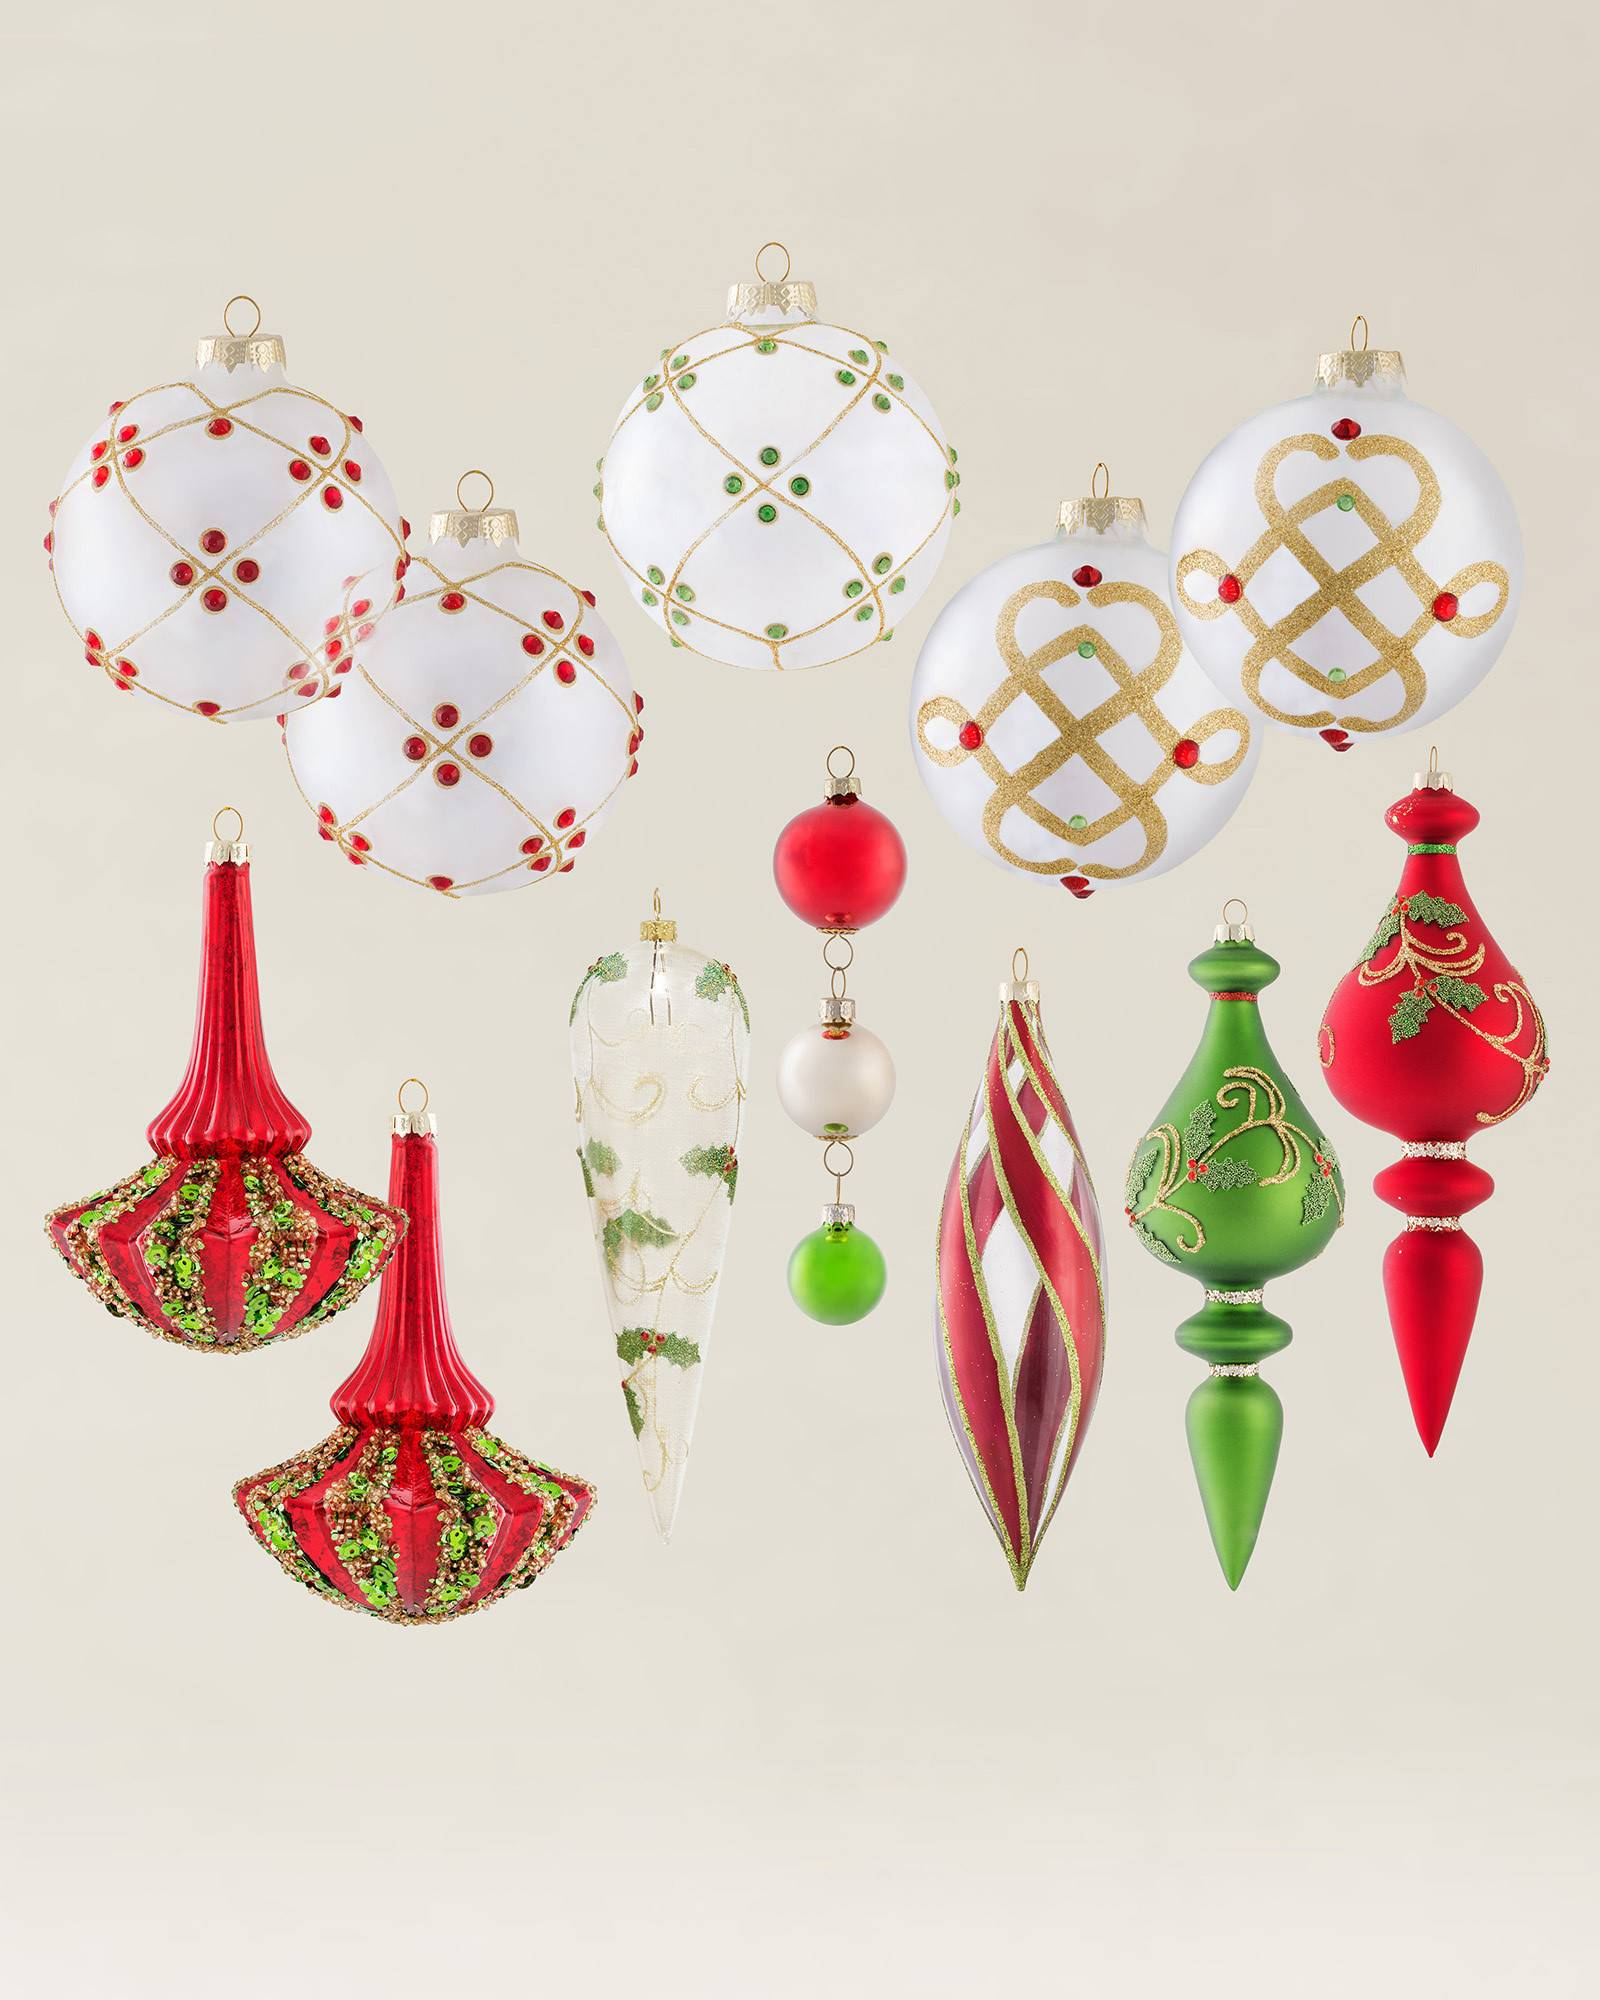 Holly christmas ornaments -  Mistletoe And Holly Glass Ornament Set 35 Pieces Alt